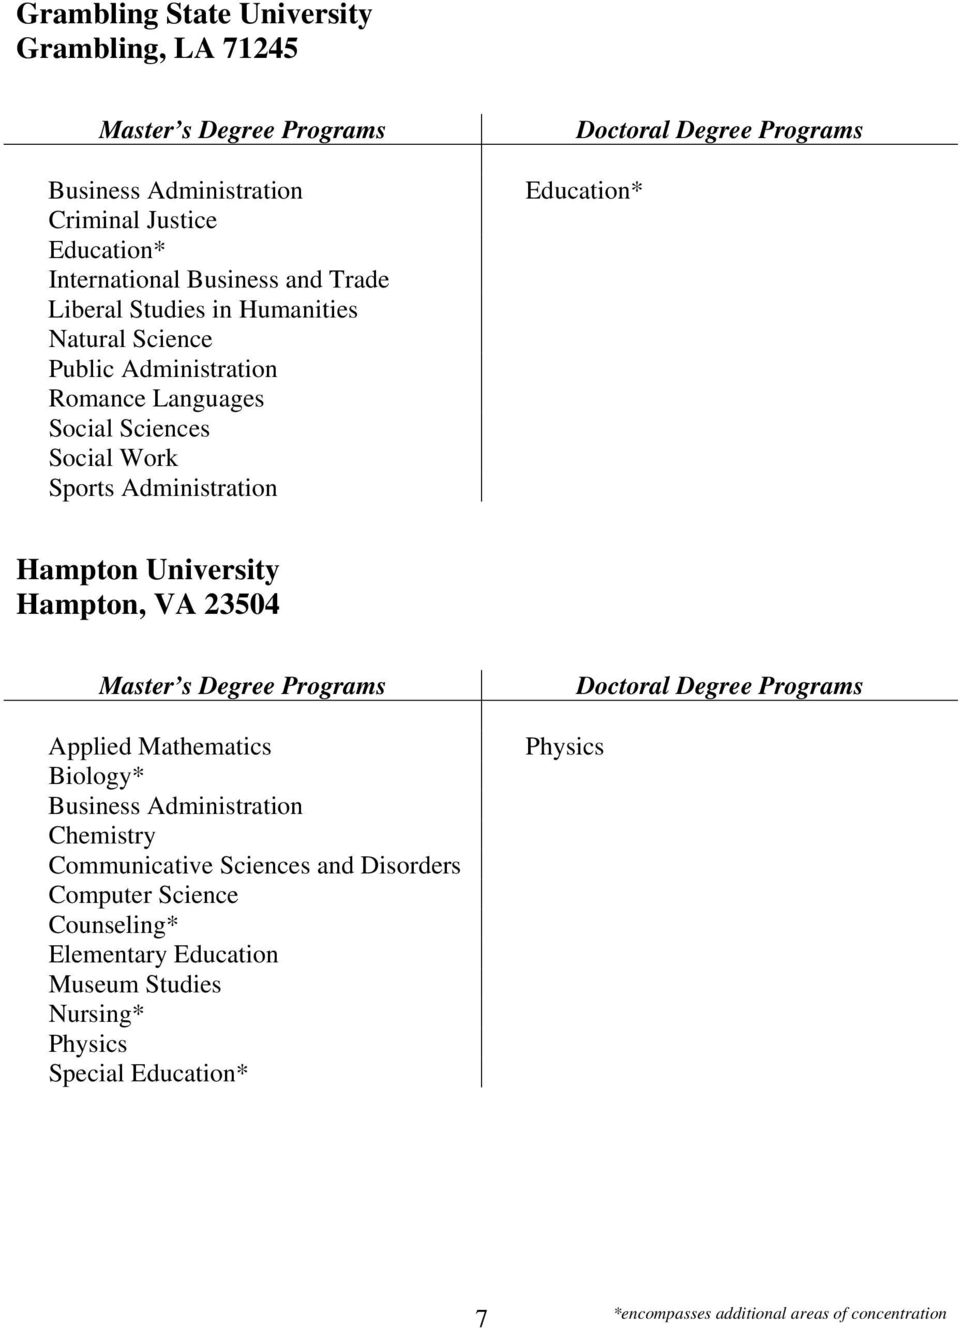 Administration Hampton University Hampton, VA 23504 Applied * Communicative Sciences and Disorders